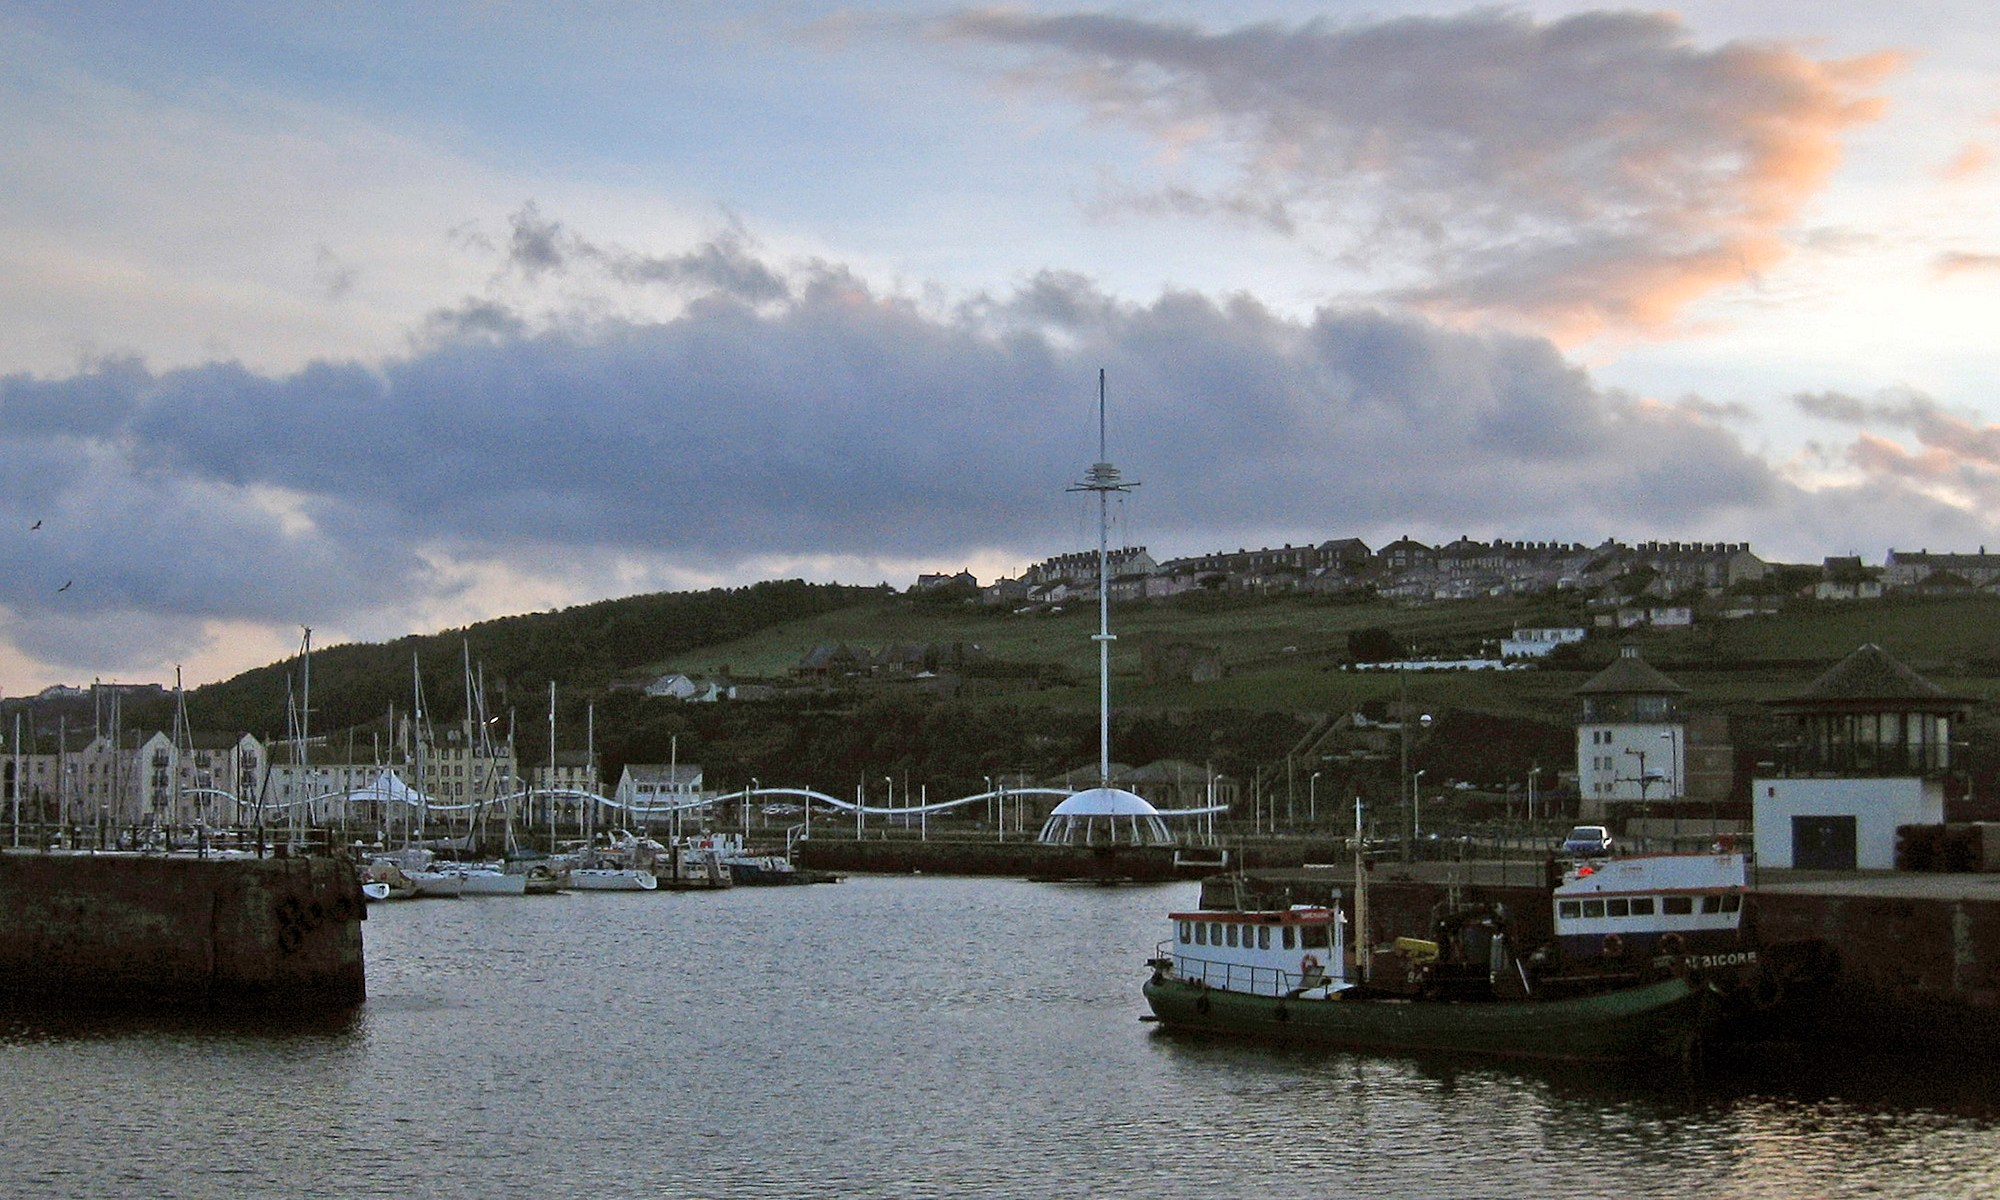 Whiteheaven Harbour